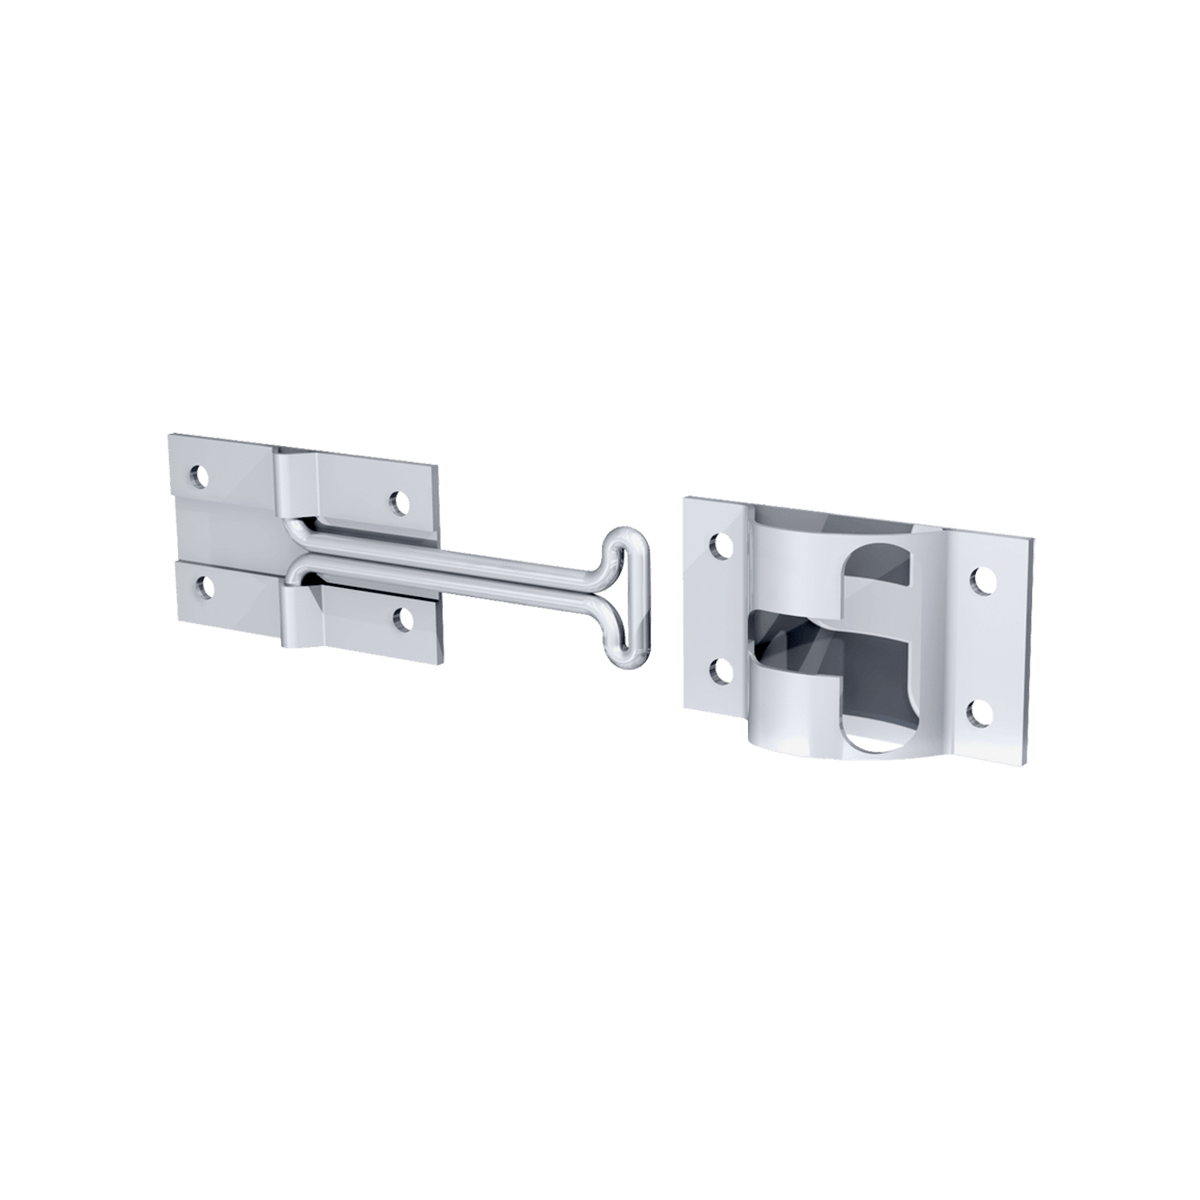 "4"" Door Holdback with Keeper, 3/4 view"